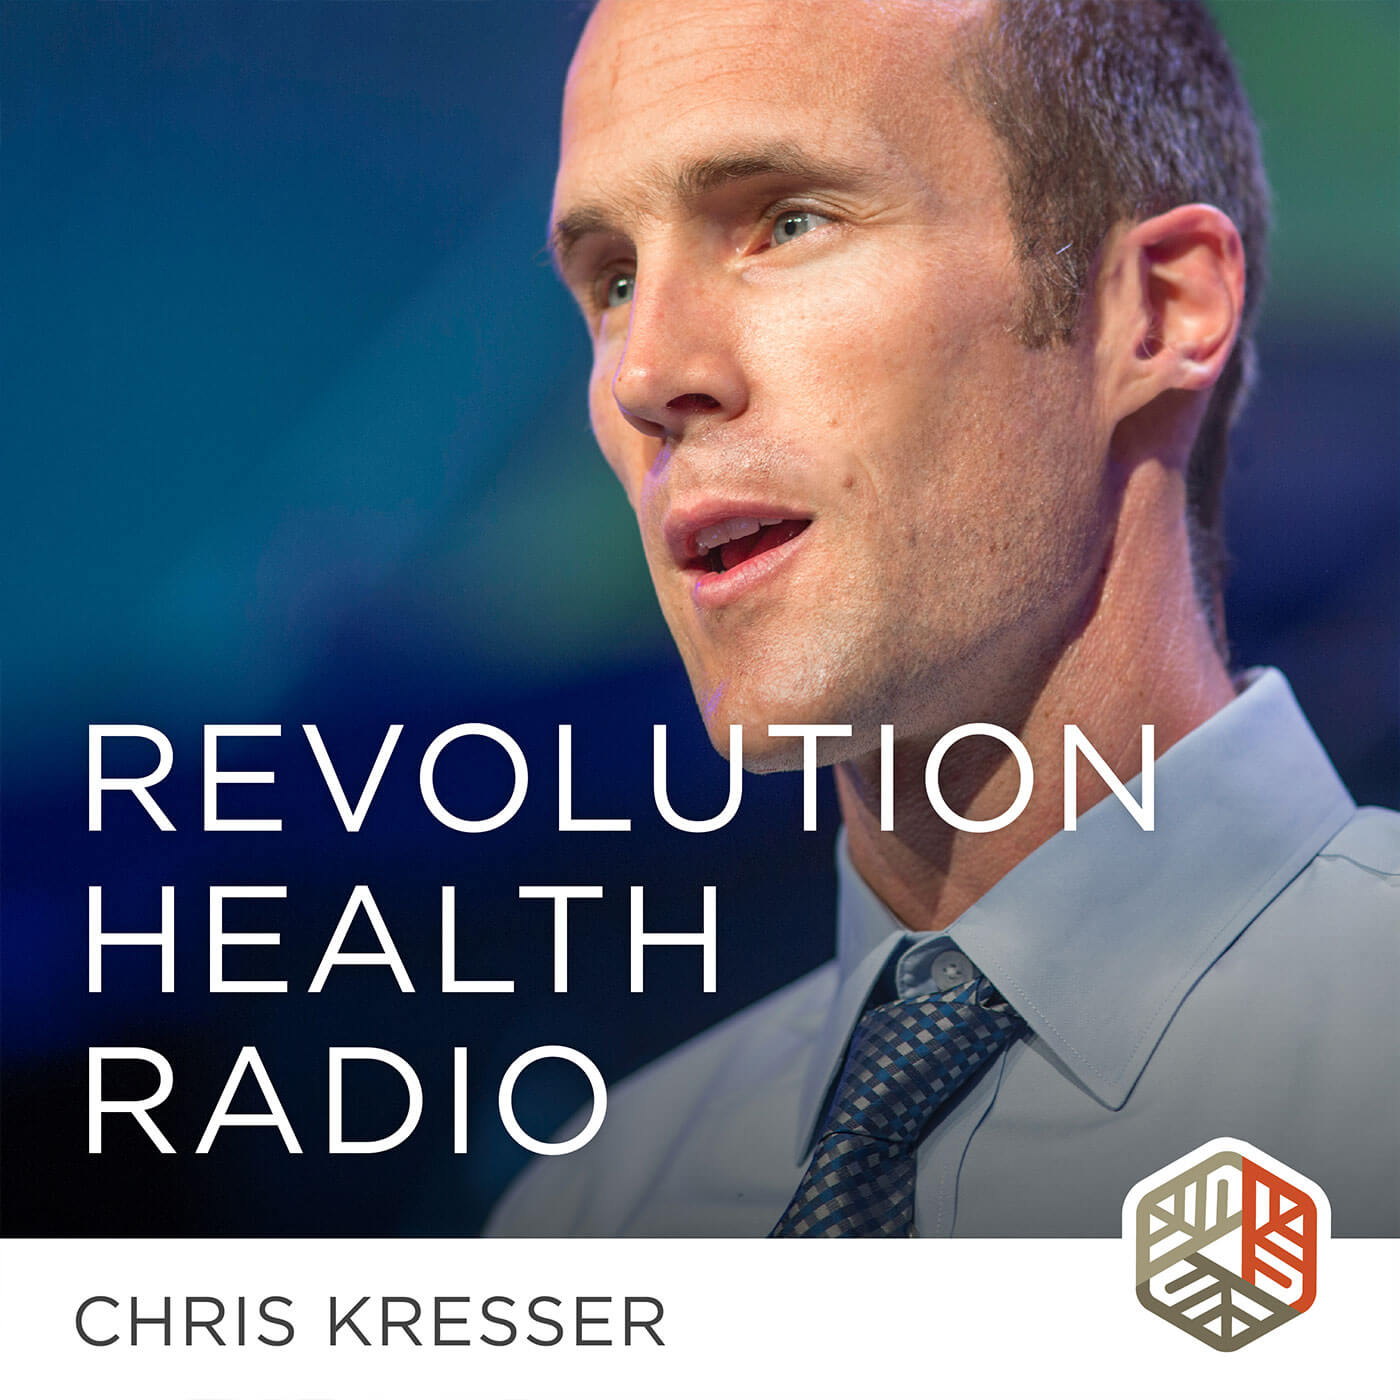 Revolution_Health_Radio_logo-1400x1400-fixed